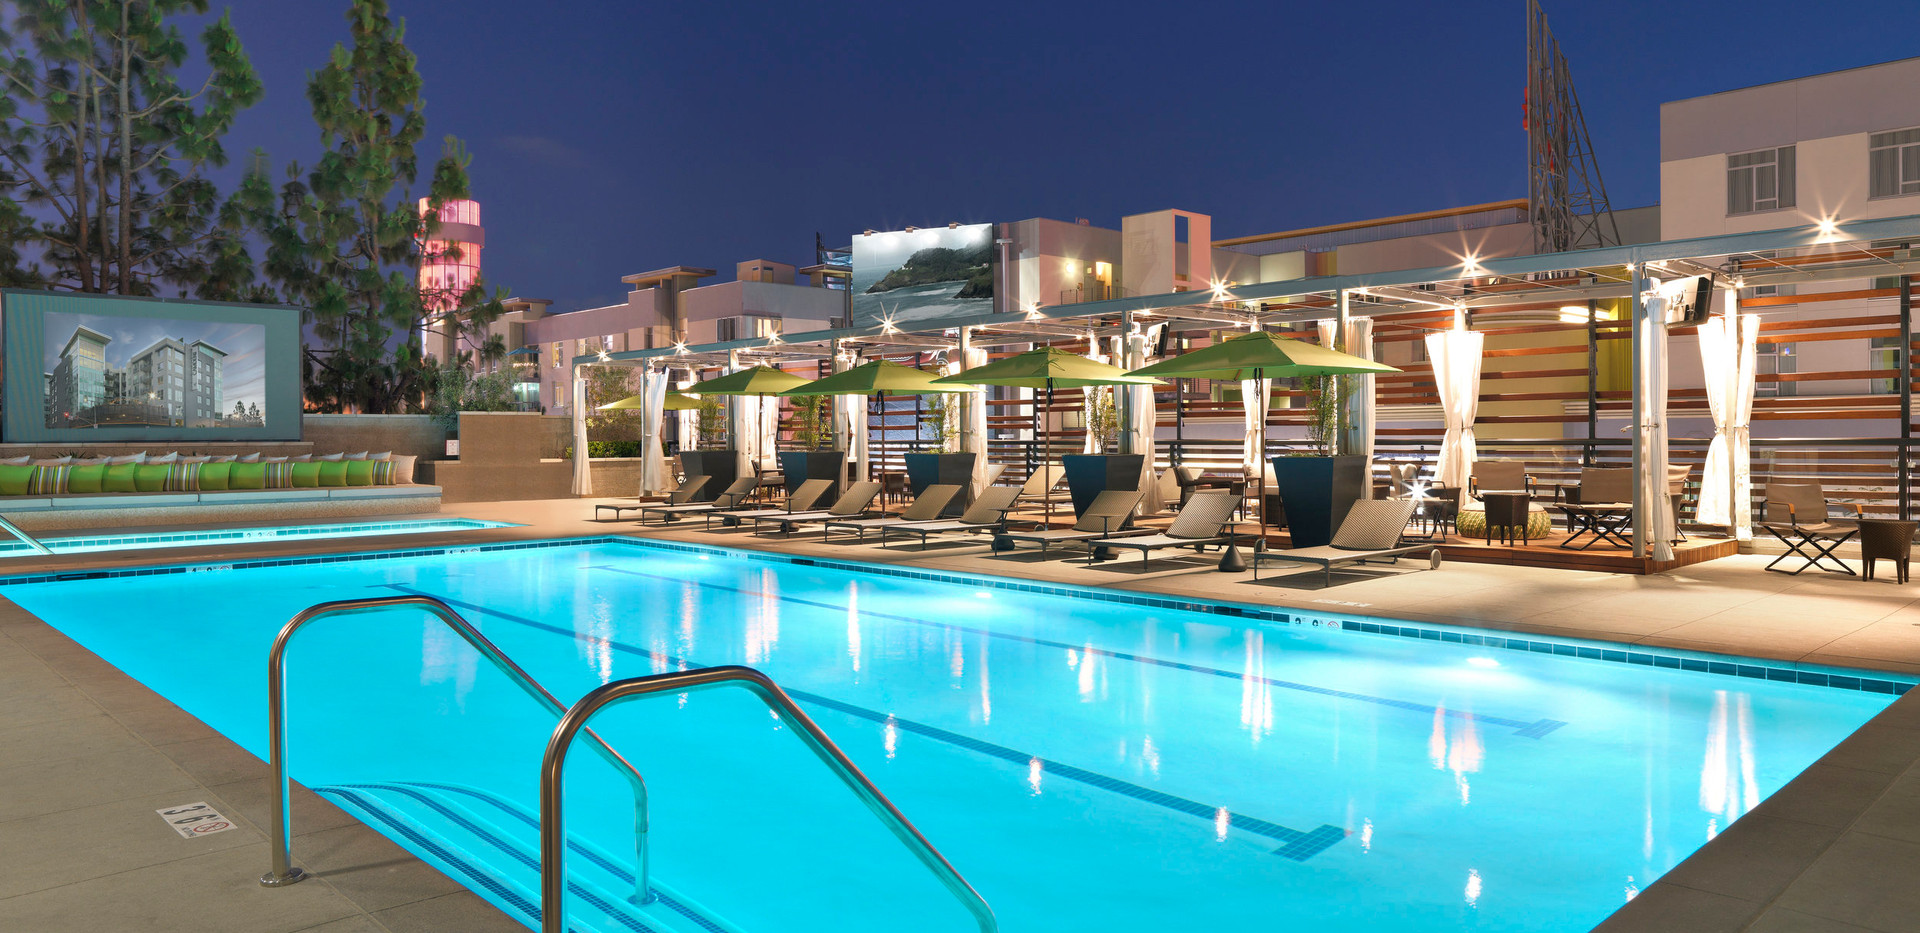 The_Camden_Hollywood_Apartments_Pool_Nig